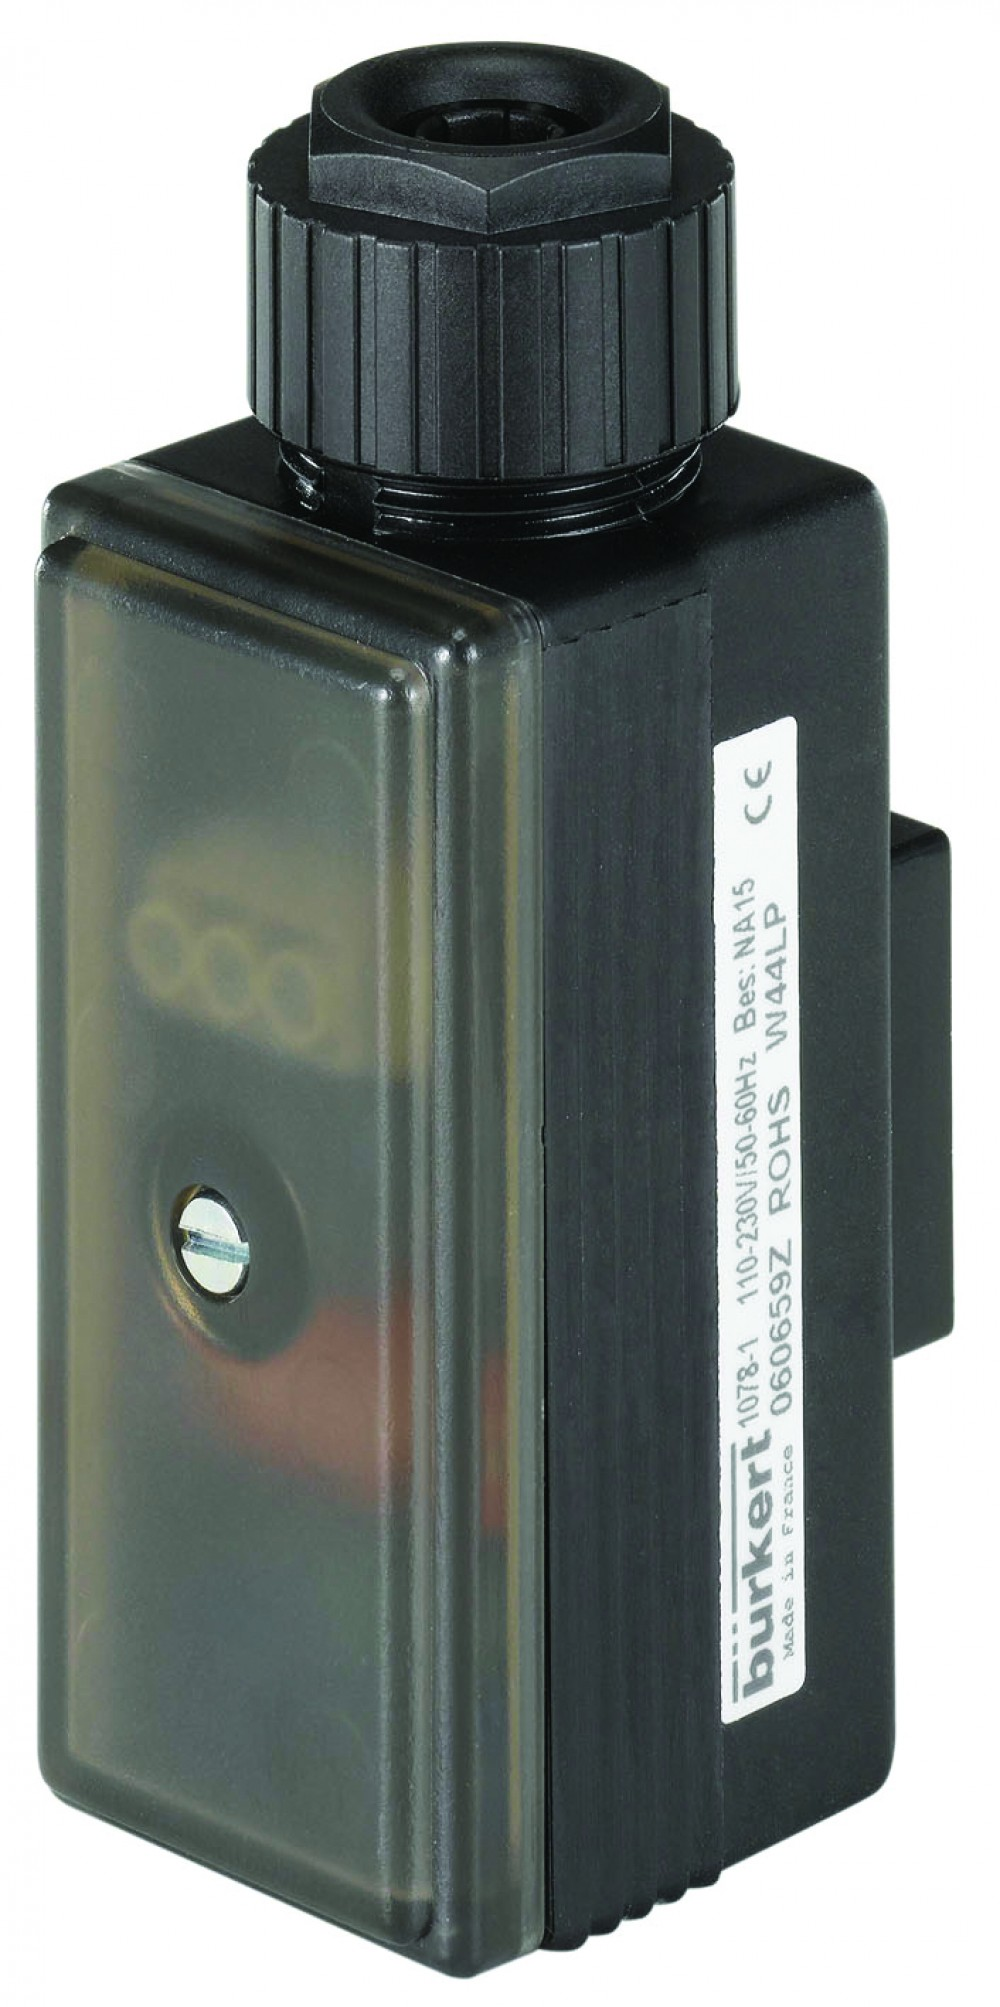 BURKERT TYPE 1078-1 - TIMER UNIT FOR VALVE CONTROL  This Product is no longer available and has been replaced by type 1087 timer